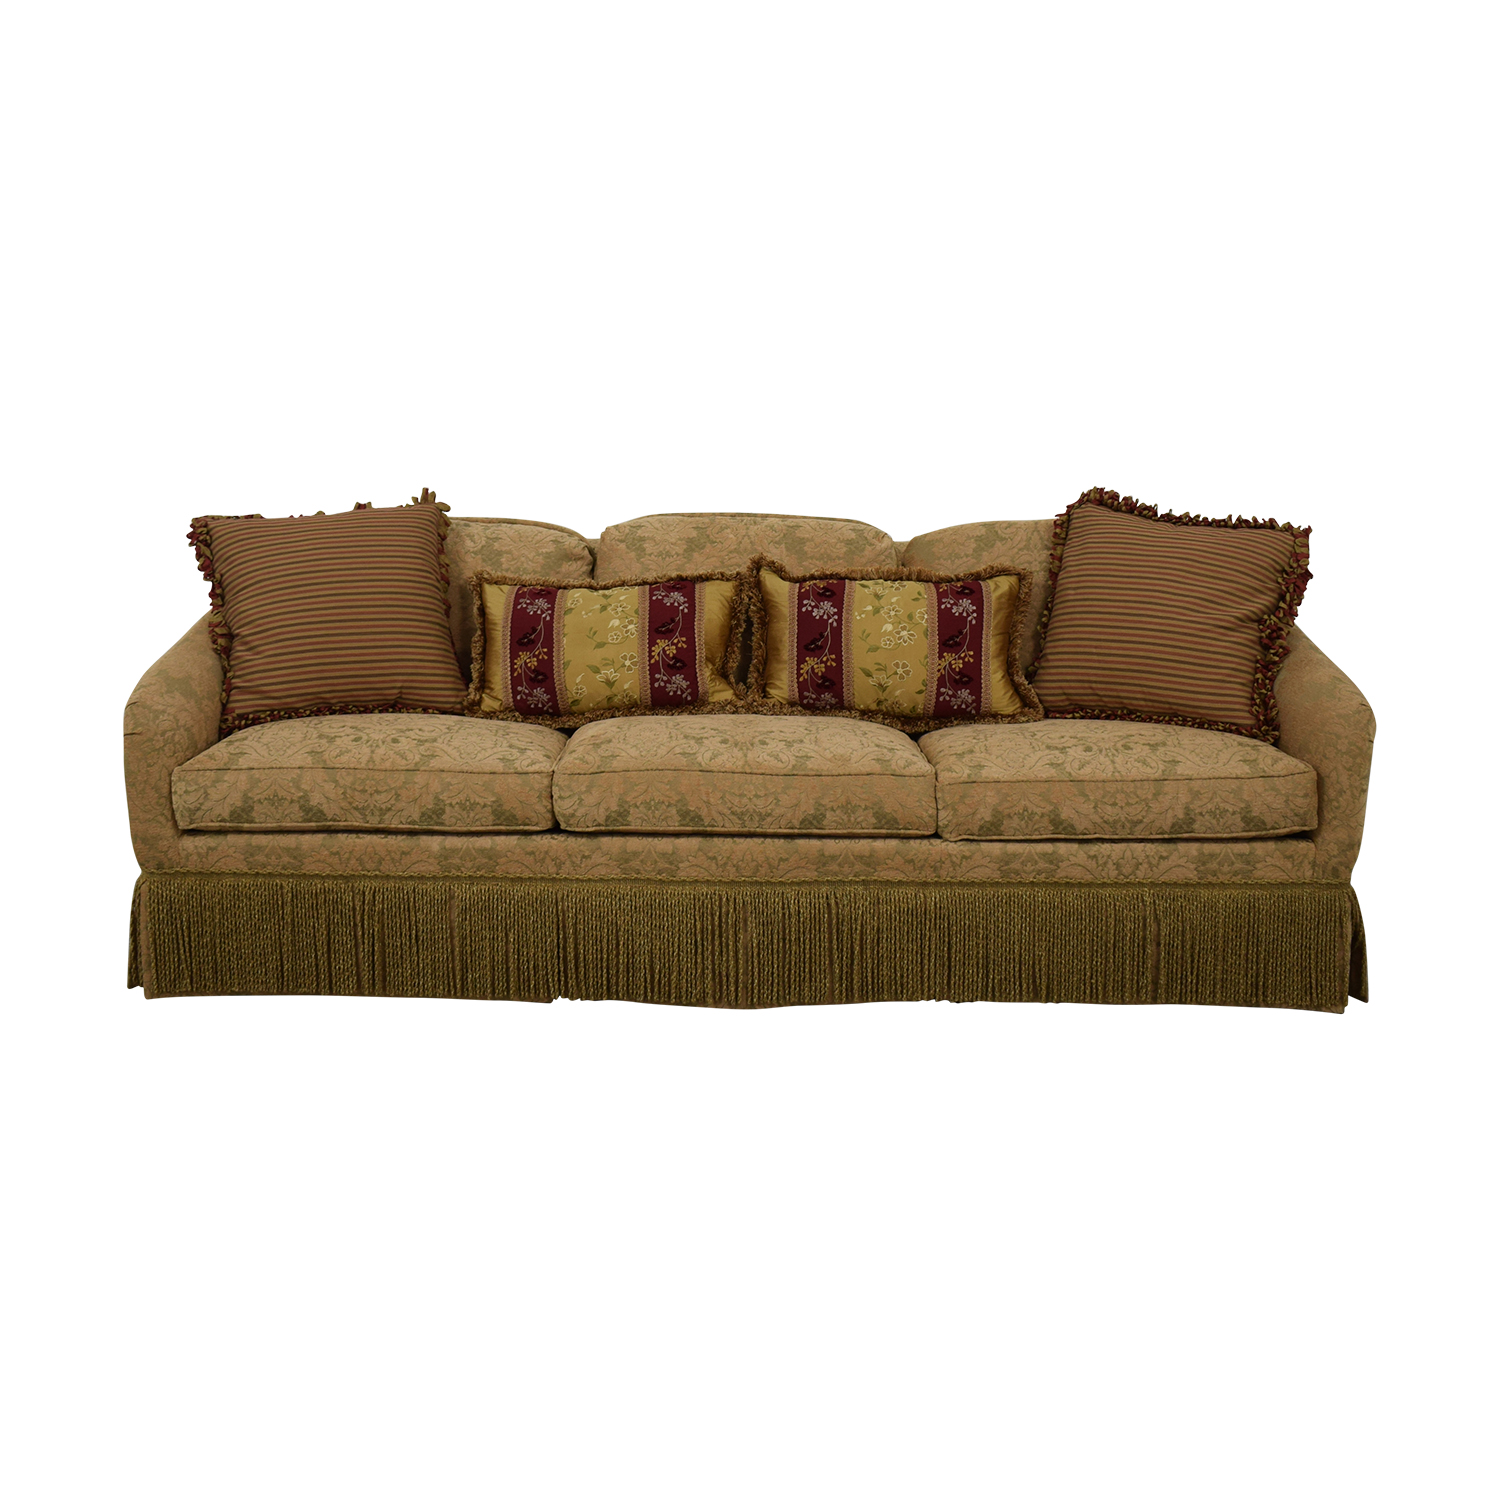 Hickory Chair Hickory Chair Three-Cushion Floral Sofa Sofas